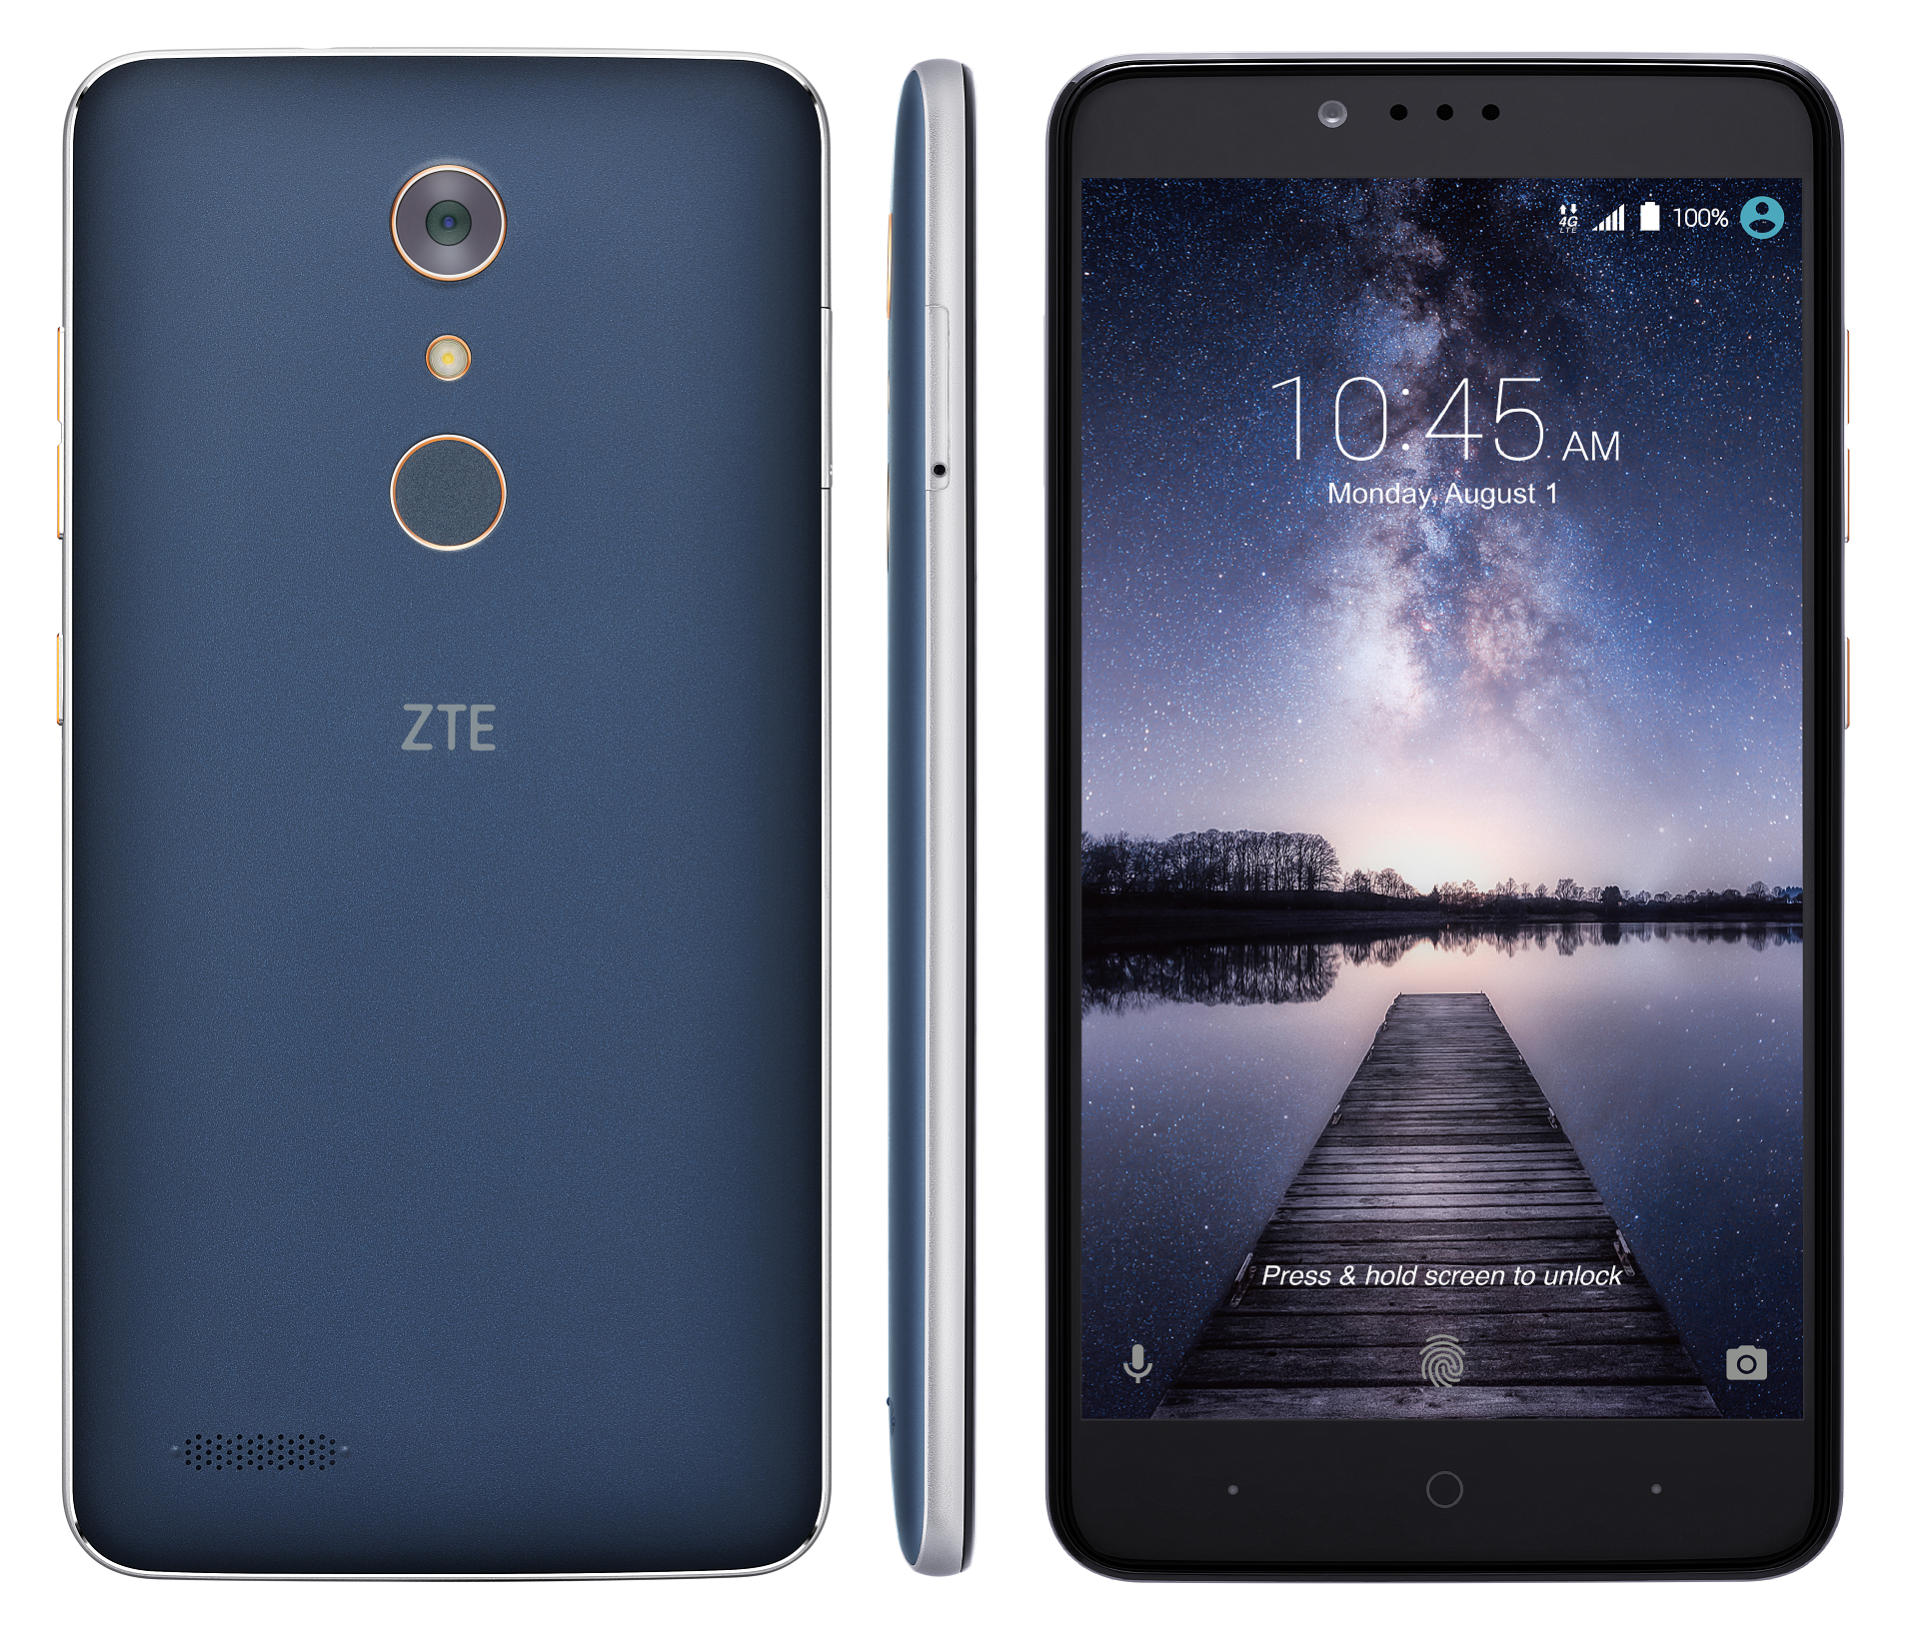 the perfect zte zmax pro 2 HTC ONE WHITE